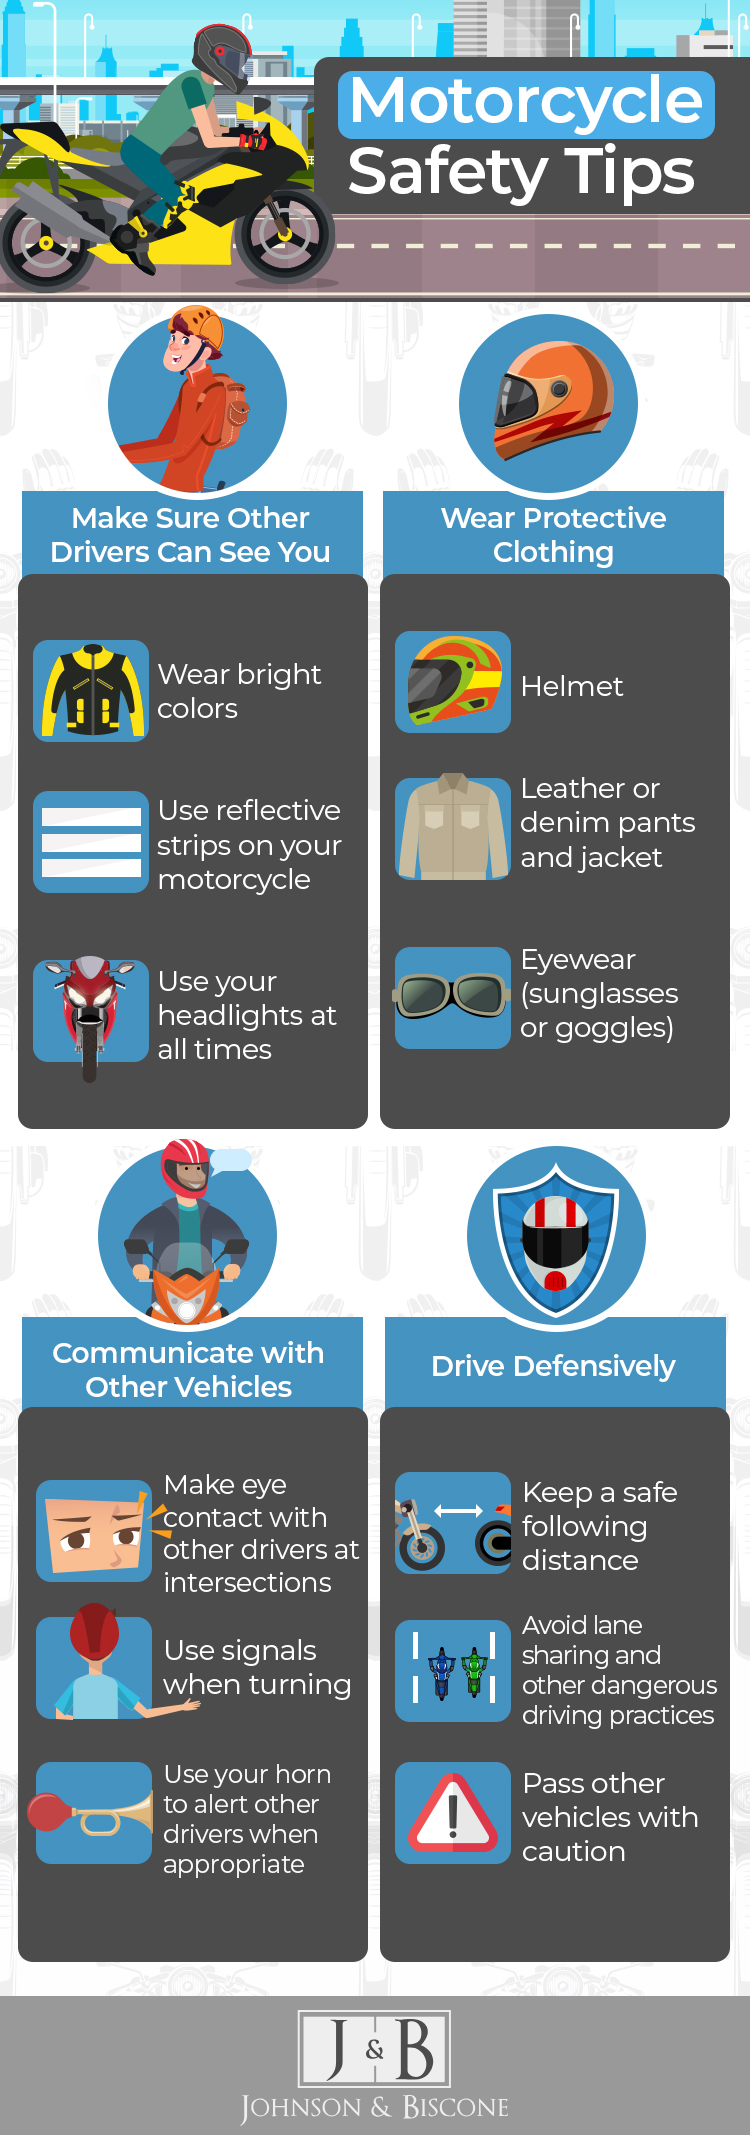 infographic discussing motorcycle safety tips